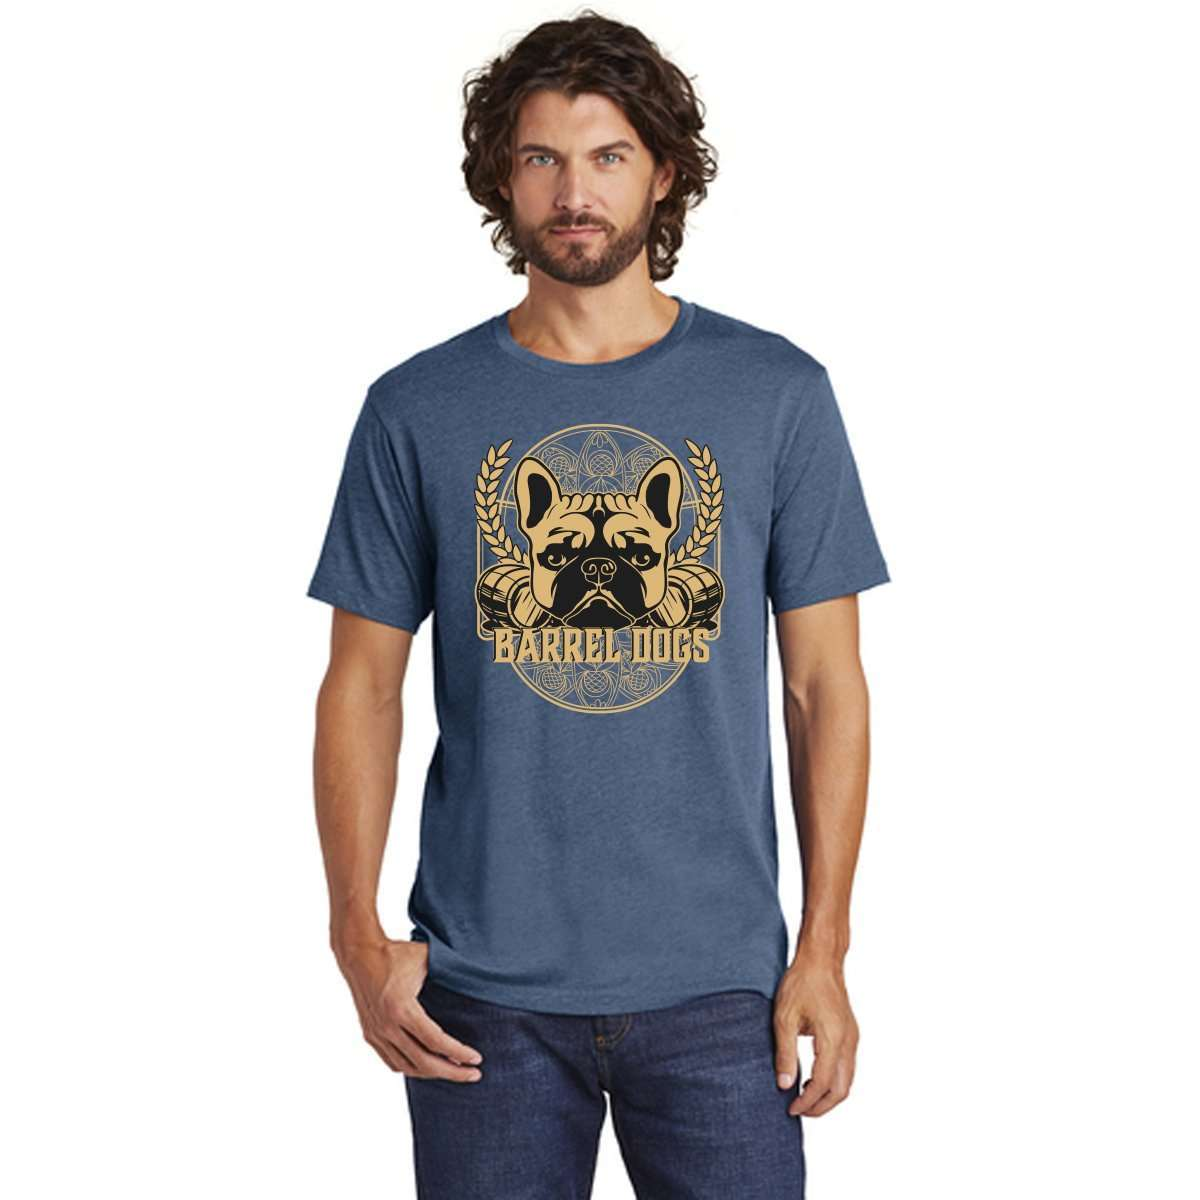 Beer Label Men's Tee - Barrel Dogs